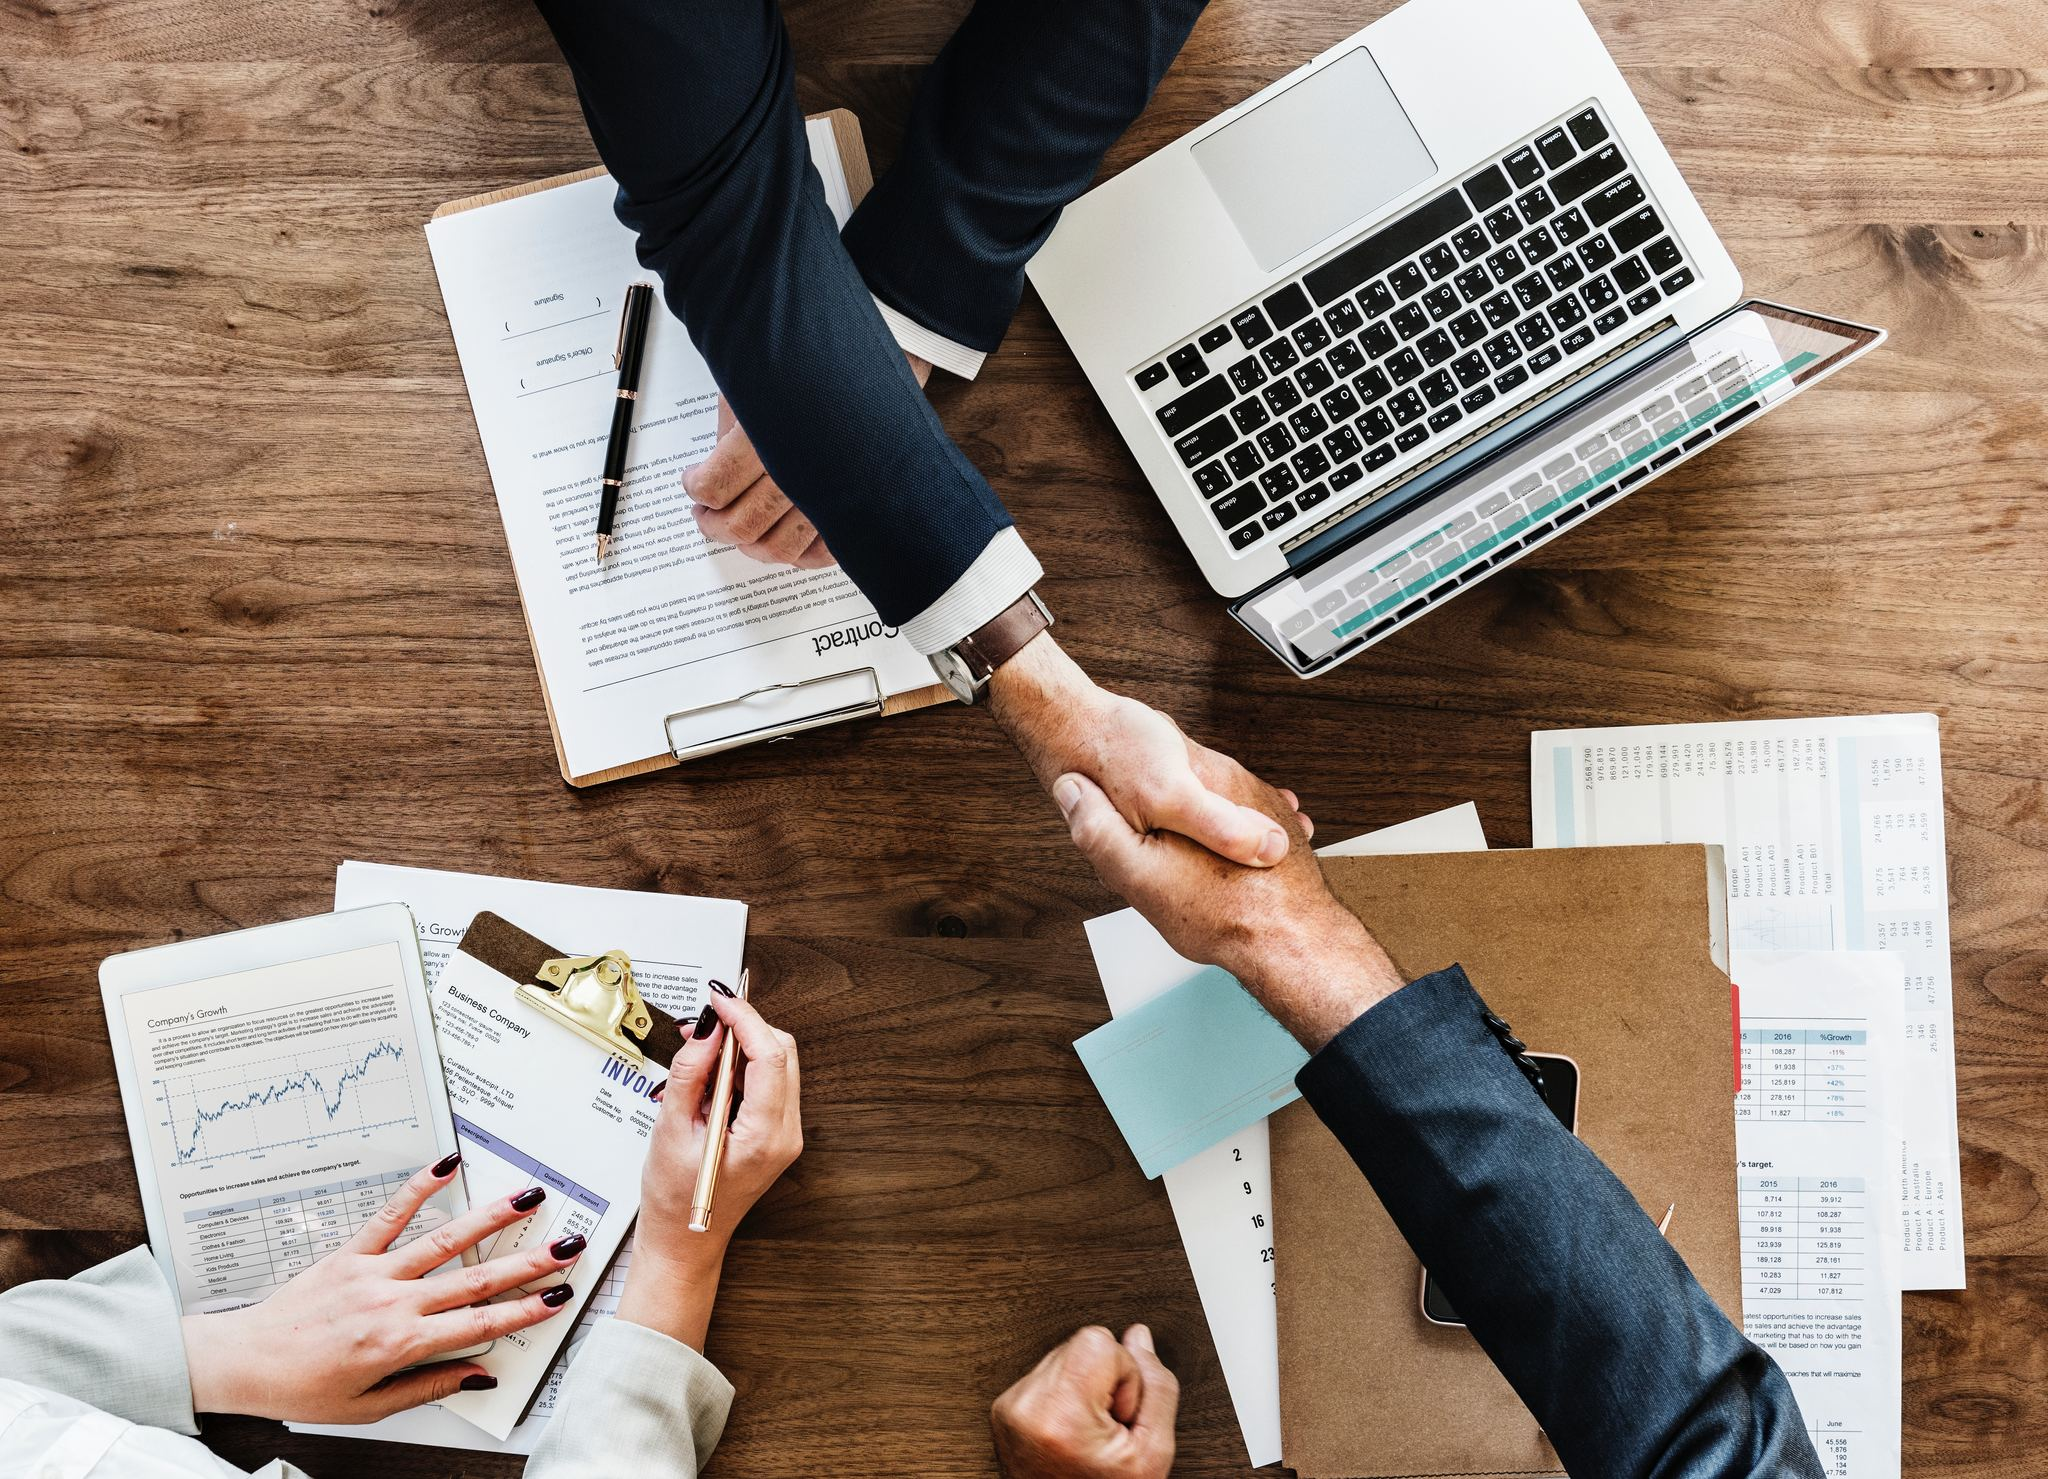 Handshake, Transforming the Way People and Businesses Work